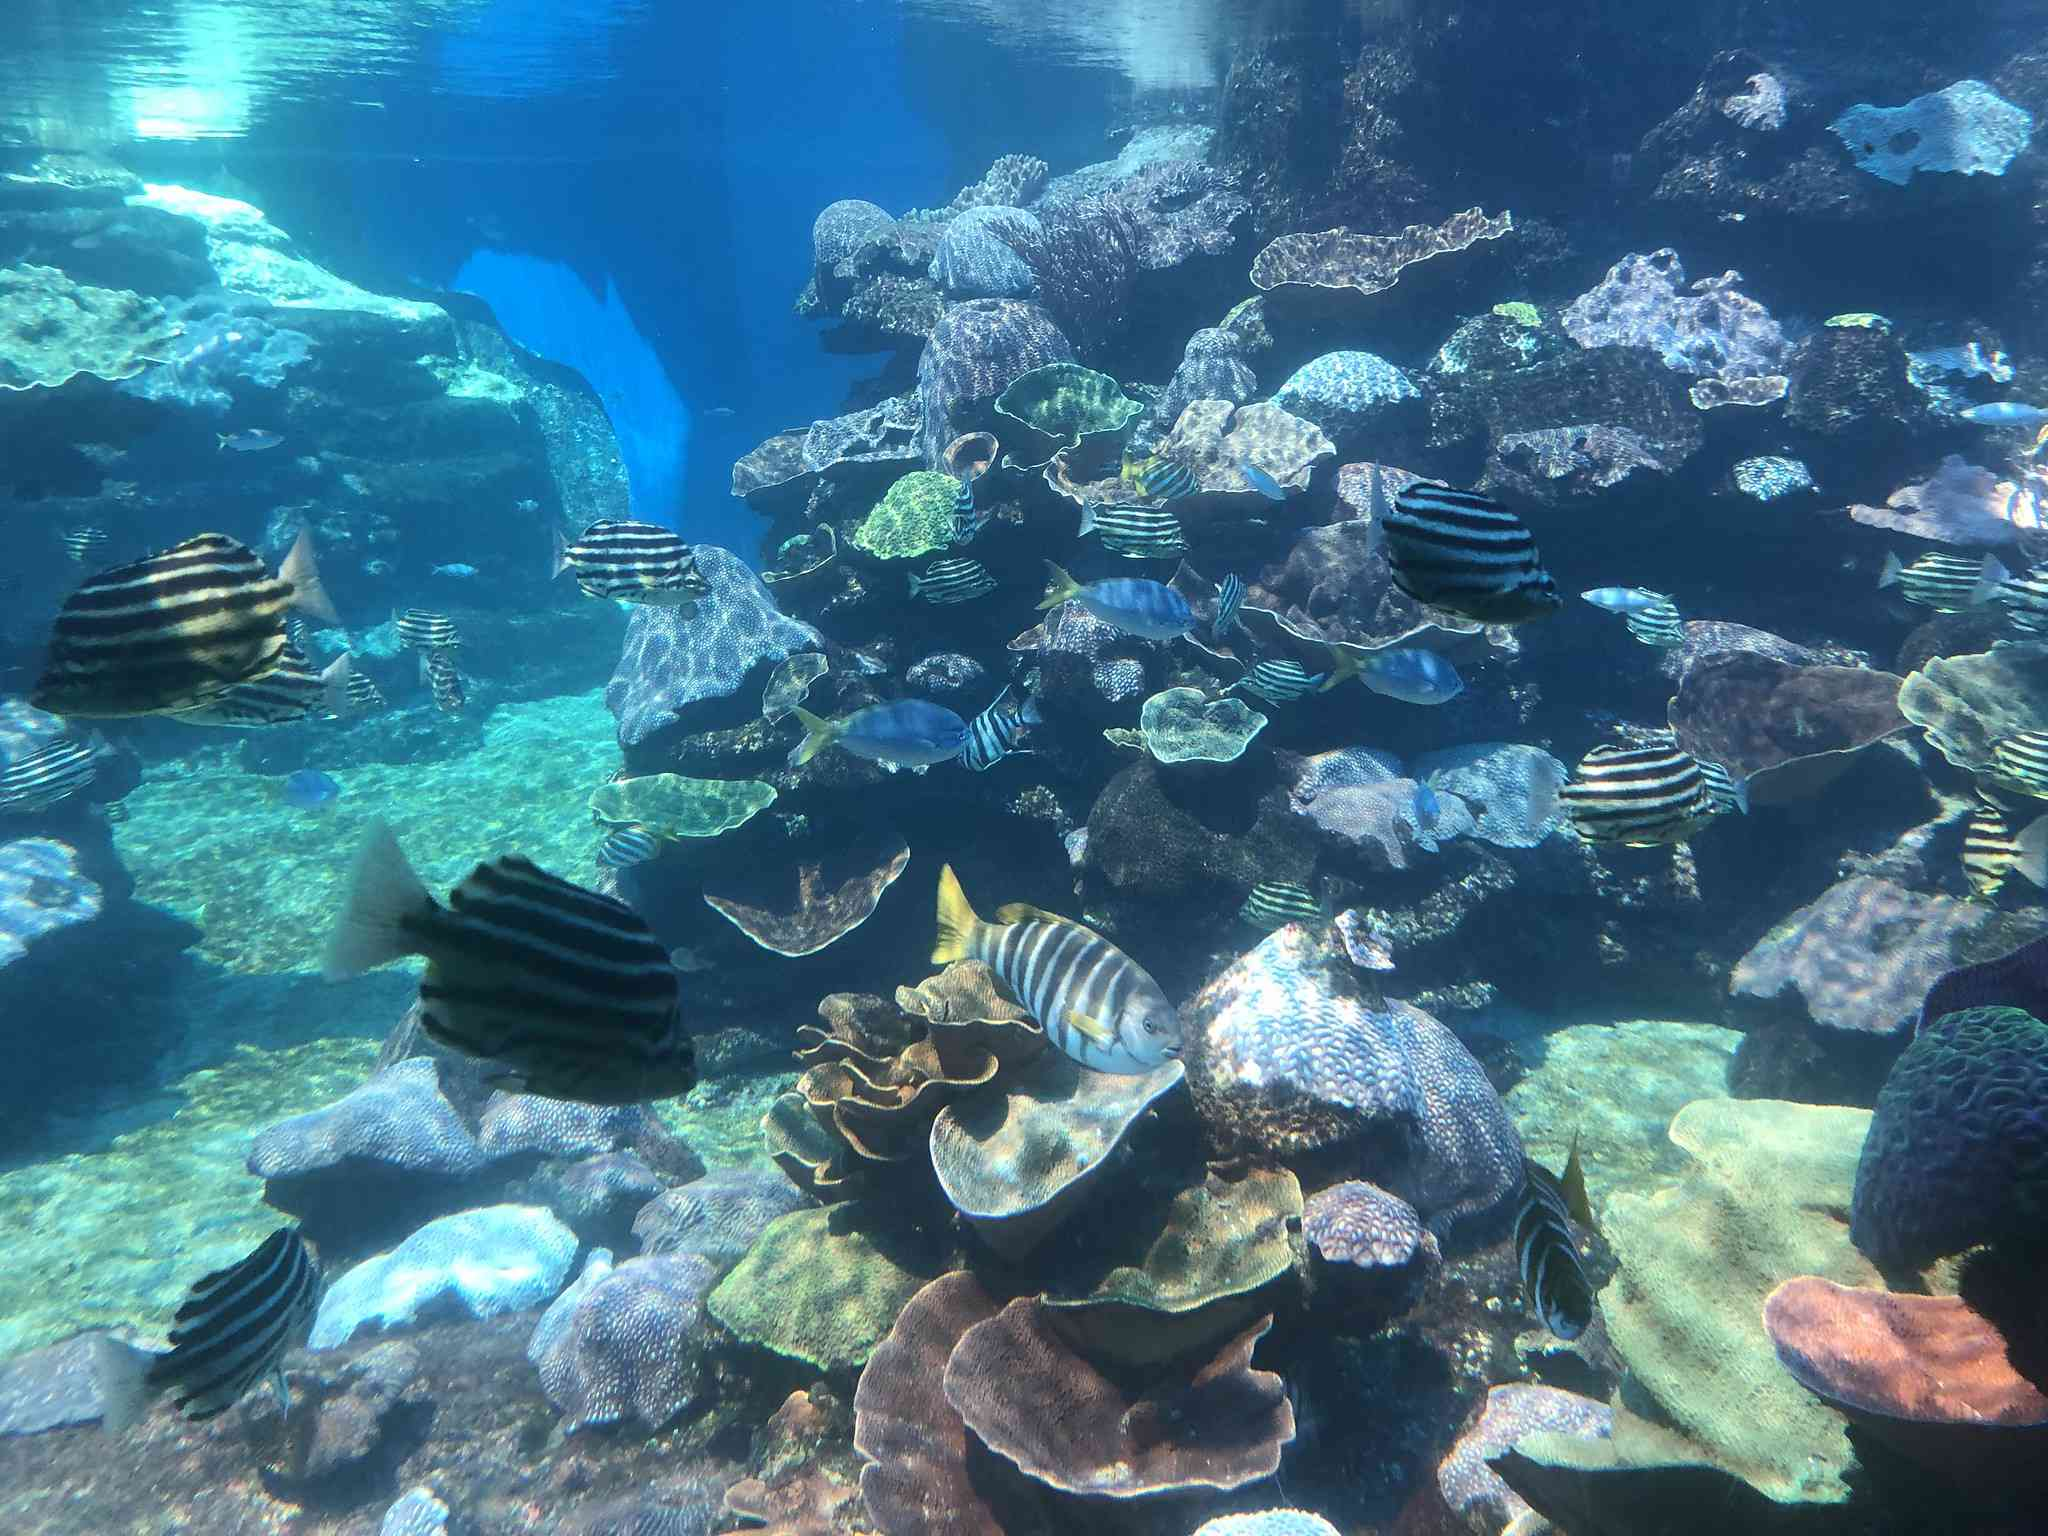 Colorful coral reef filled with zebra striped fish at the Aquarium of Western Australia